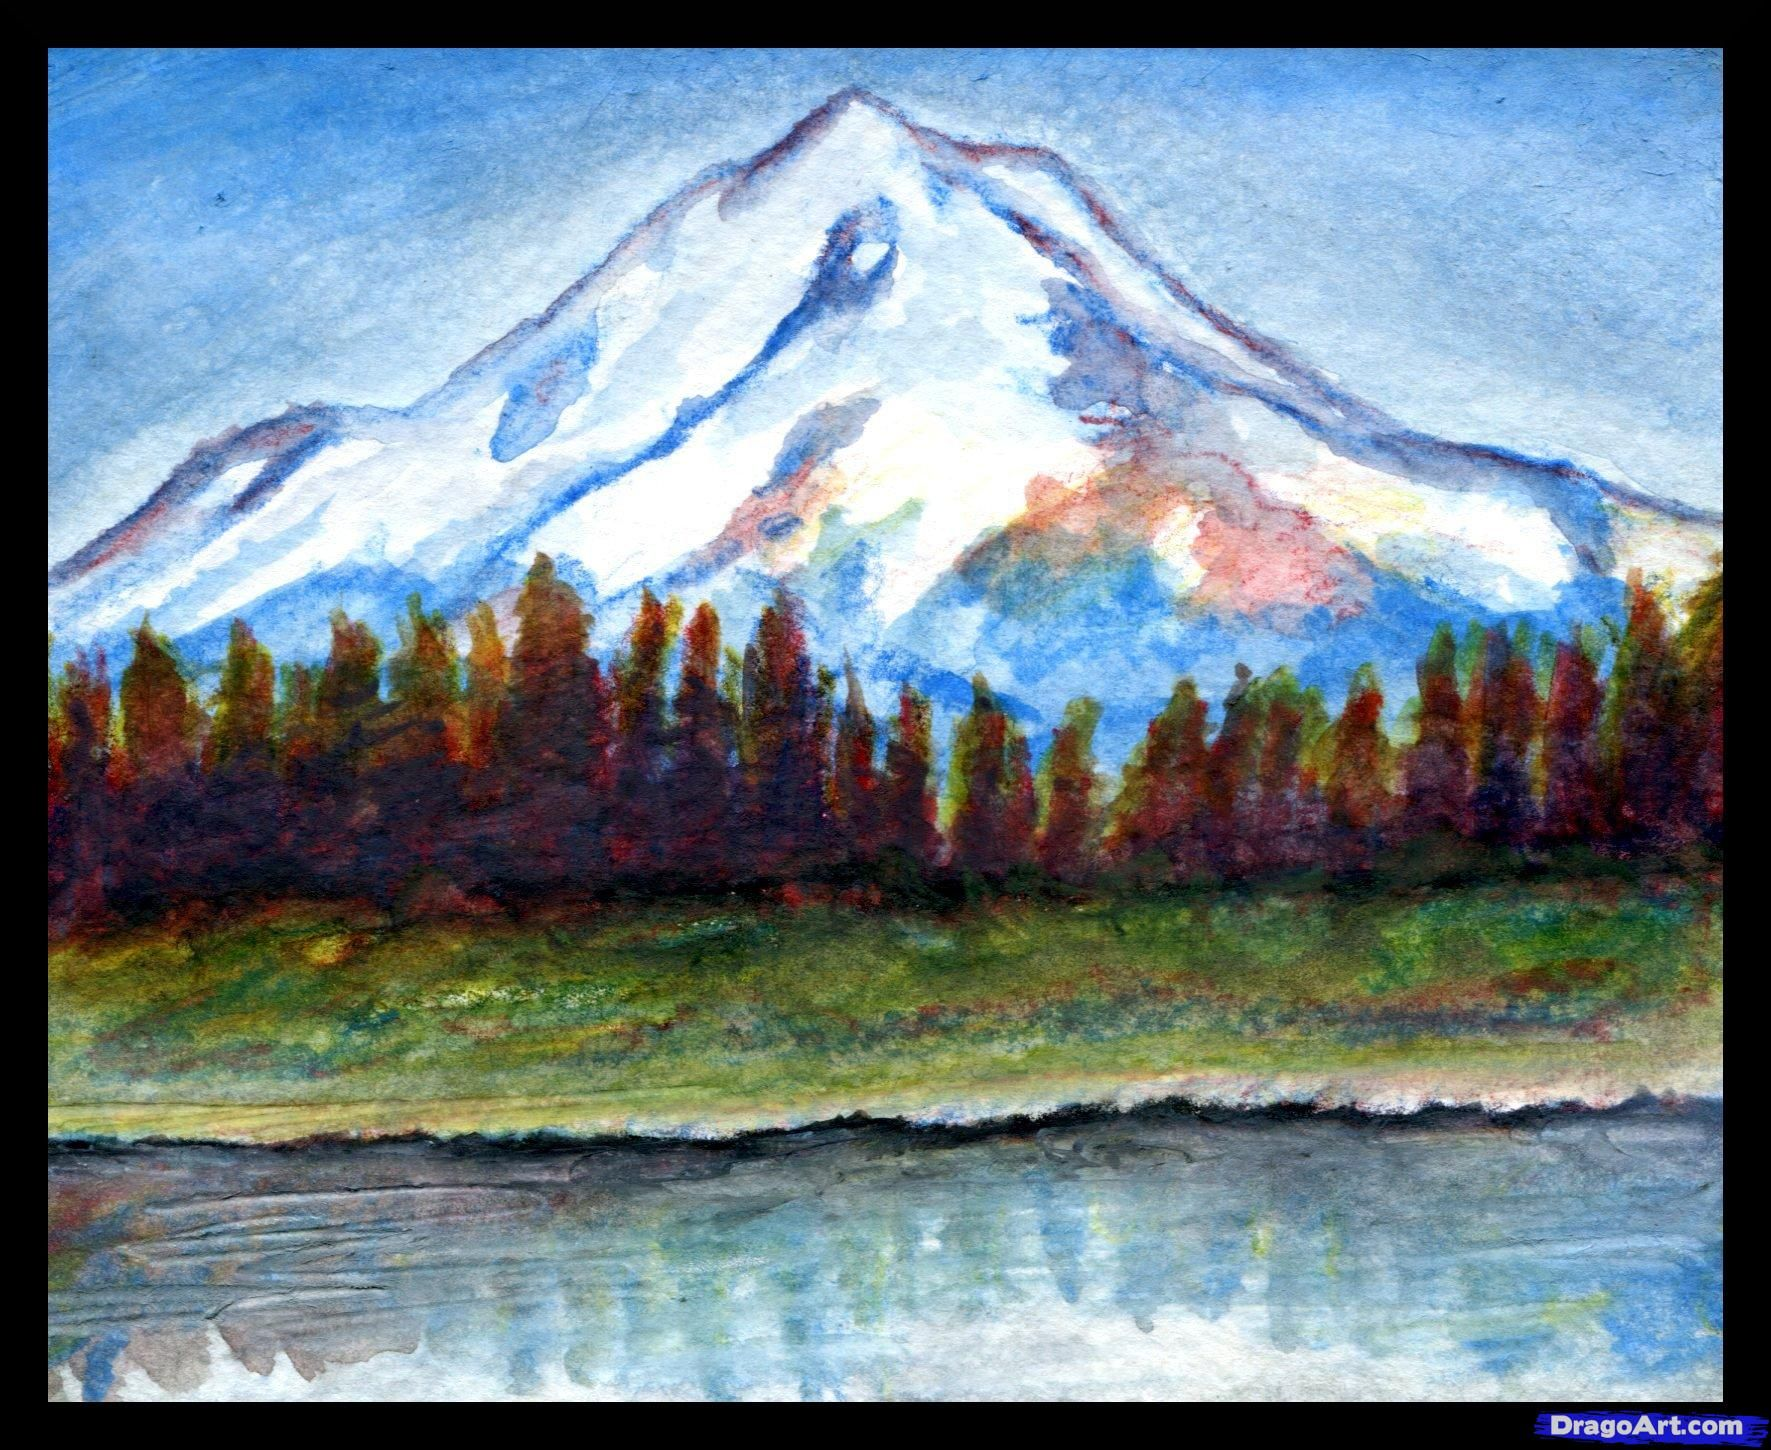 How To Draw A Realistic Landscape Draw Realistic Mountains By Finalprodigy Landscape Drawing Tutorial Colorful Landscape Mountain Drawing